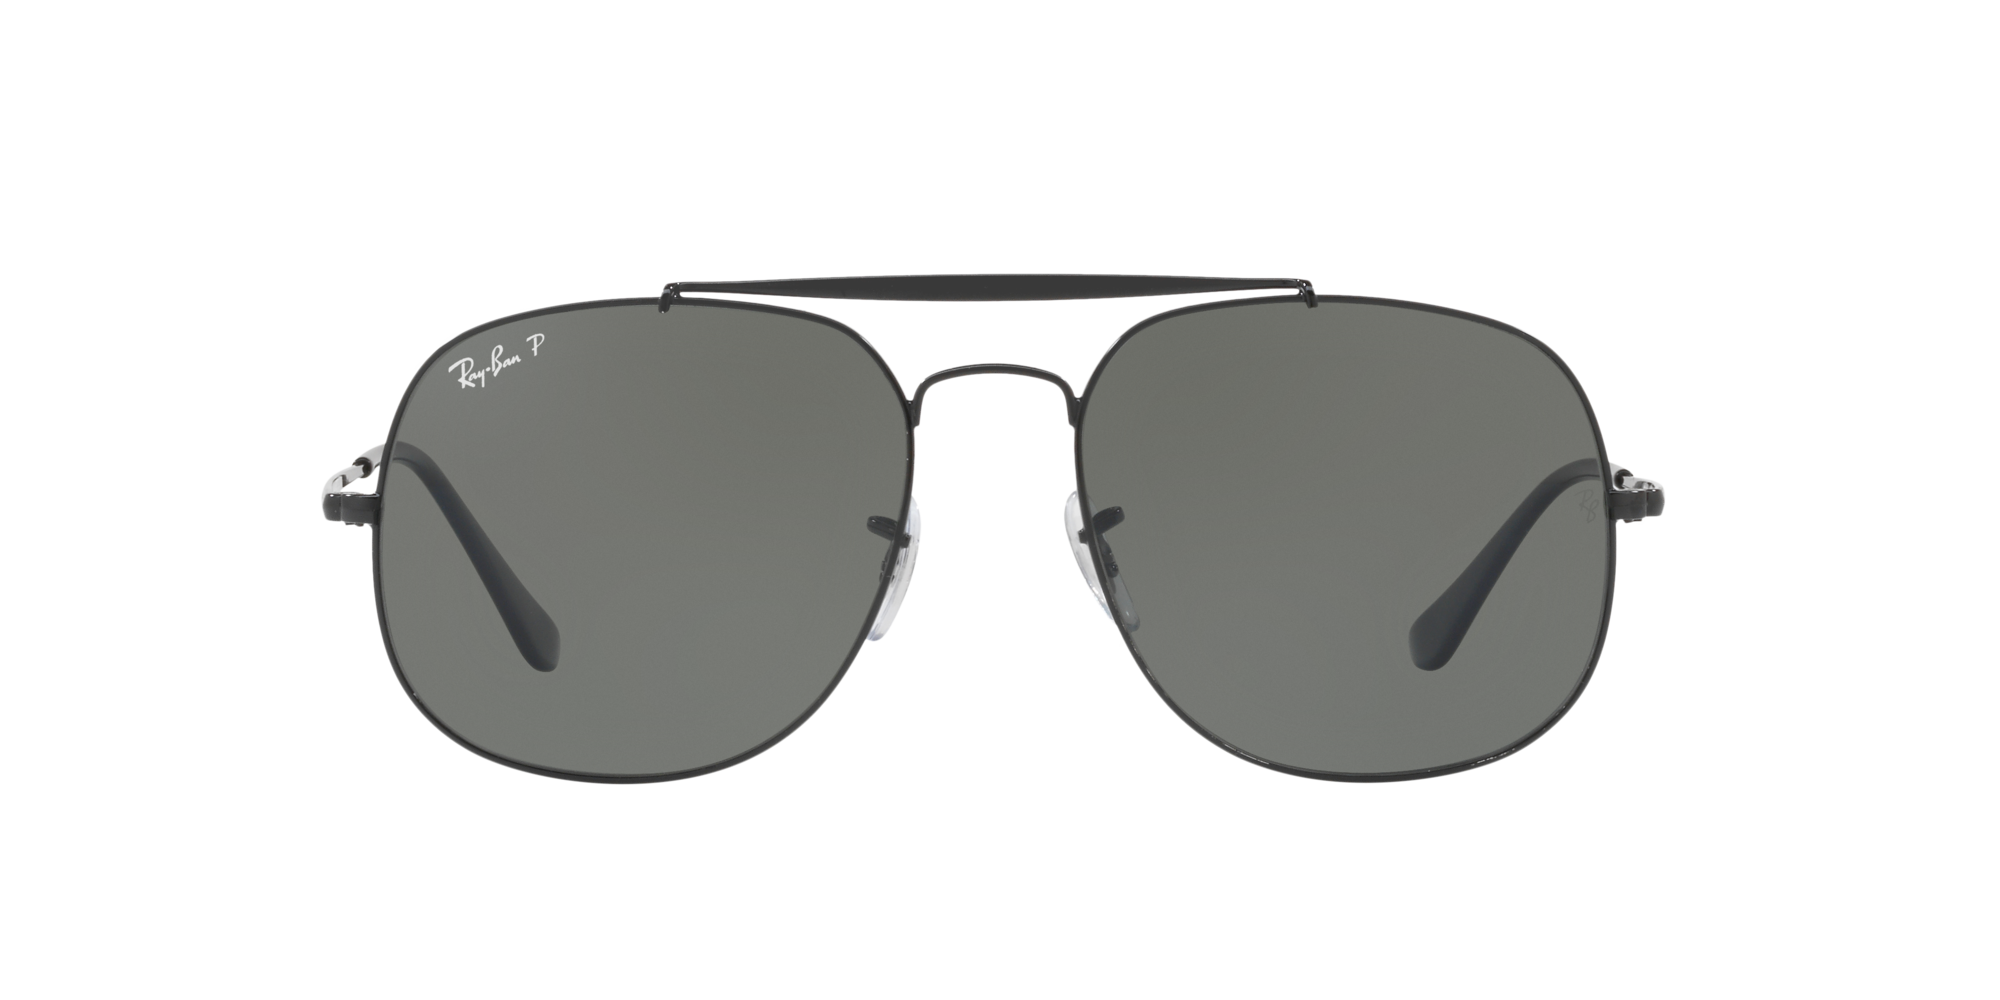 bea84dc2d55d6 gafas de sol RAY-BAN THE GENERAL RB 3561 002 58. 360° Product View 360°  Product View ...